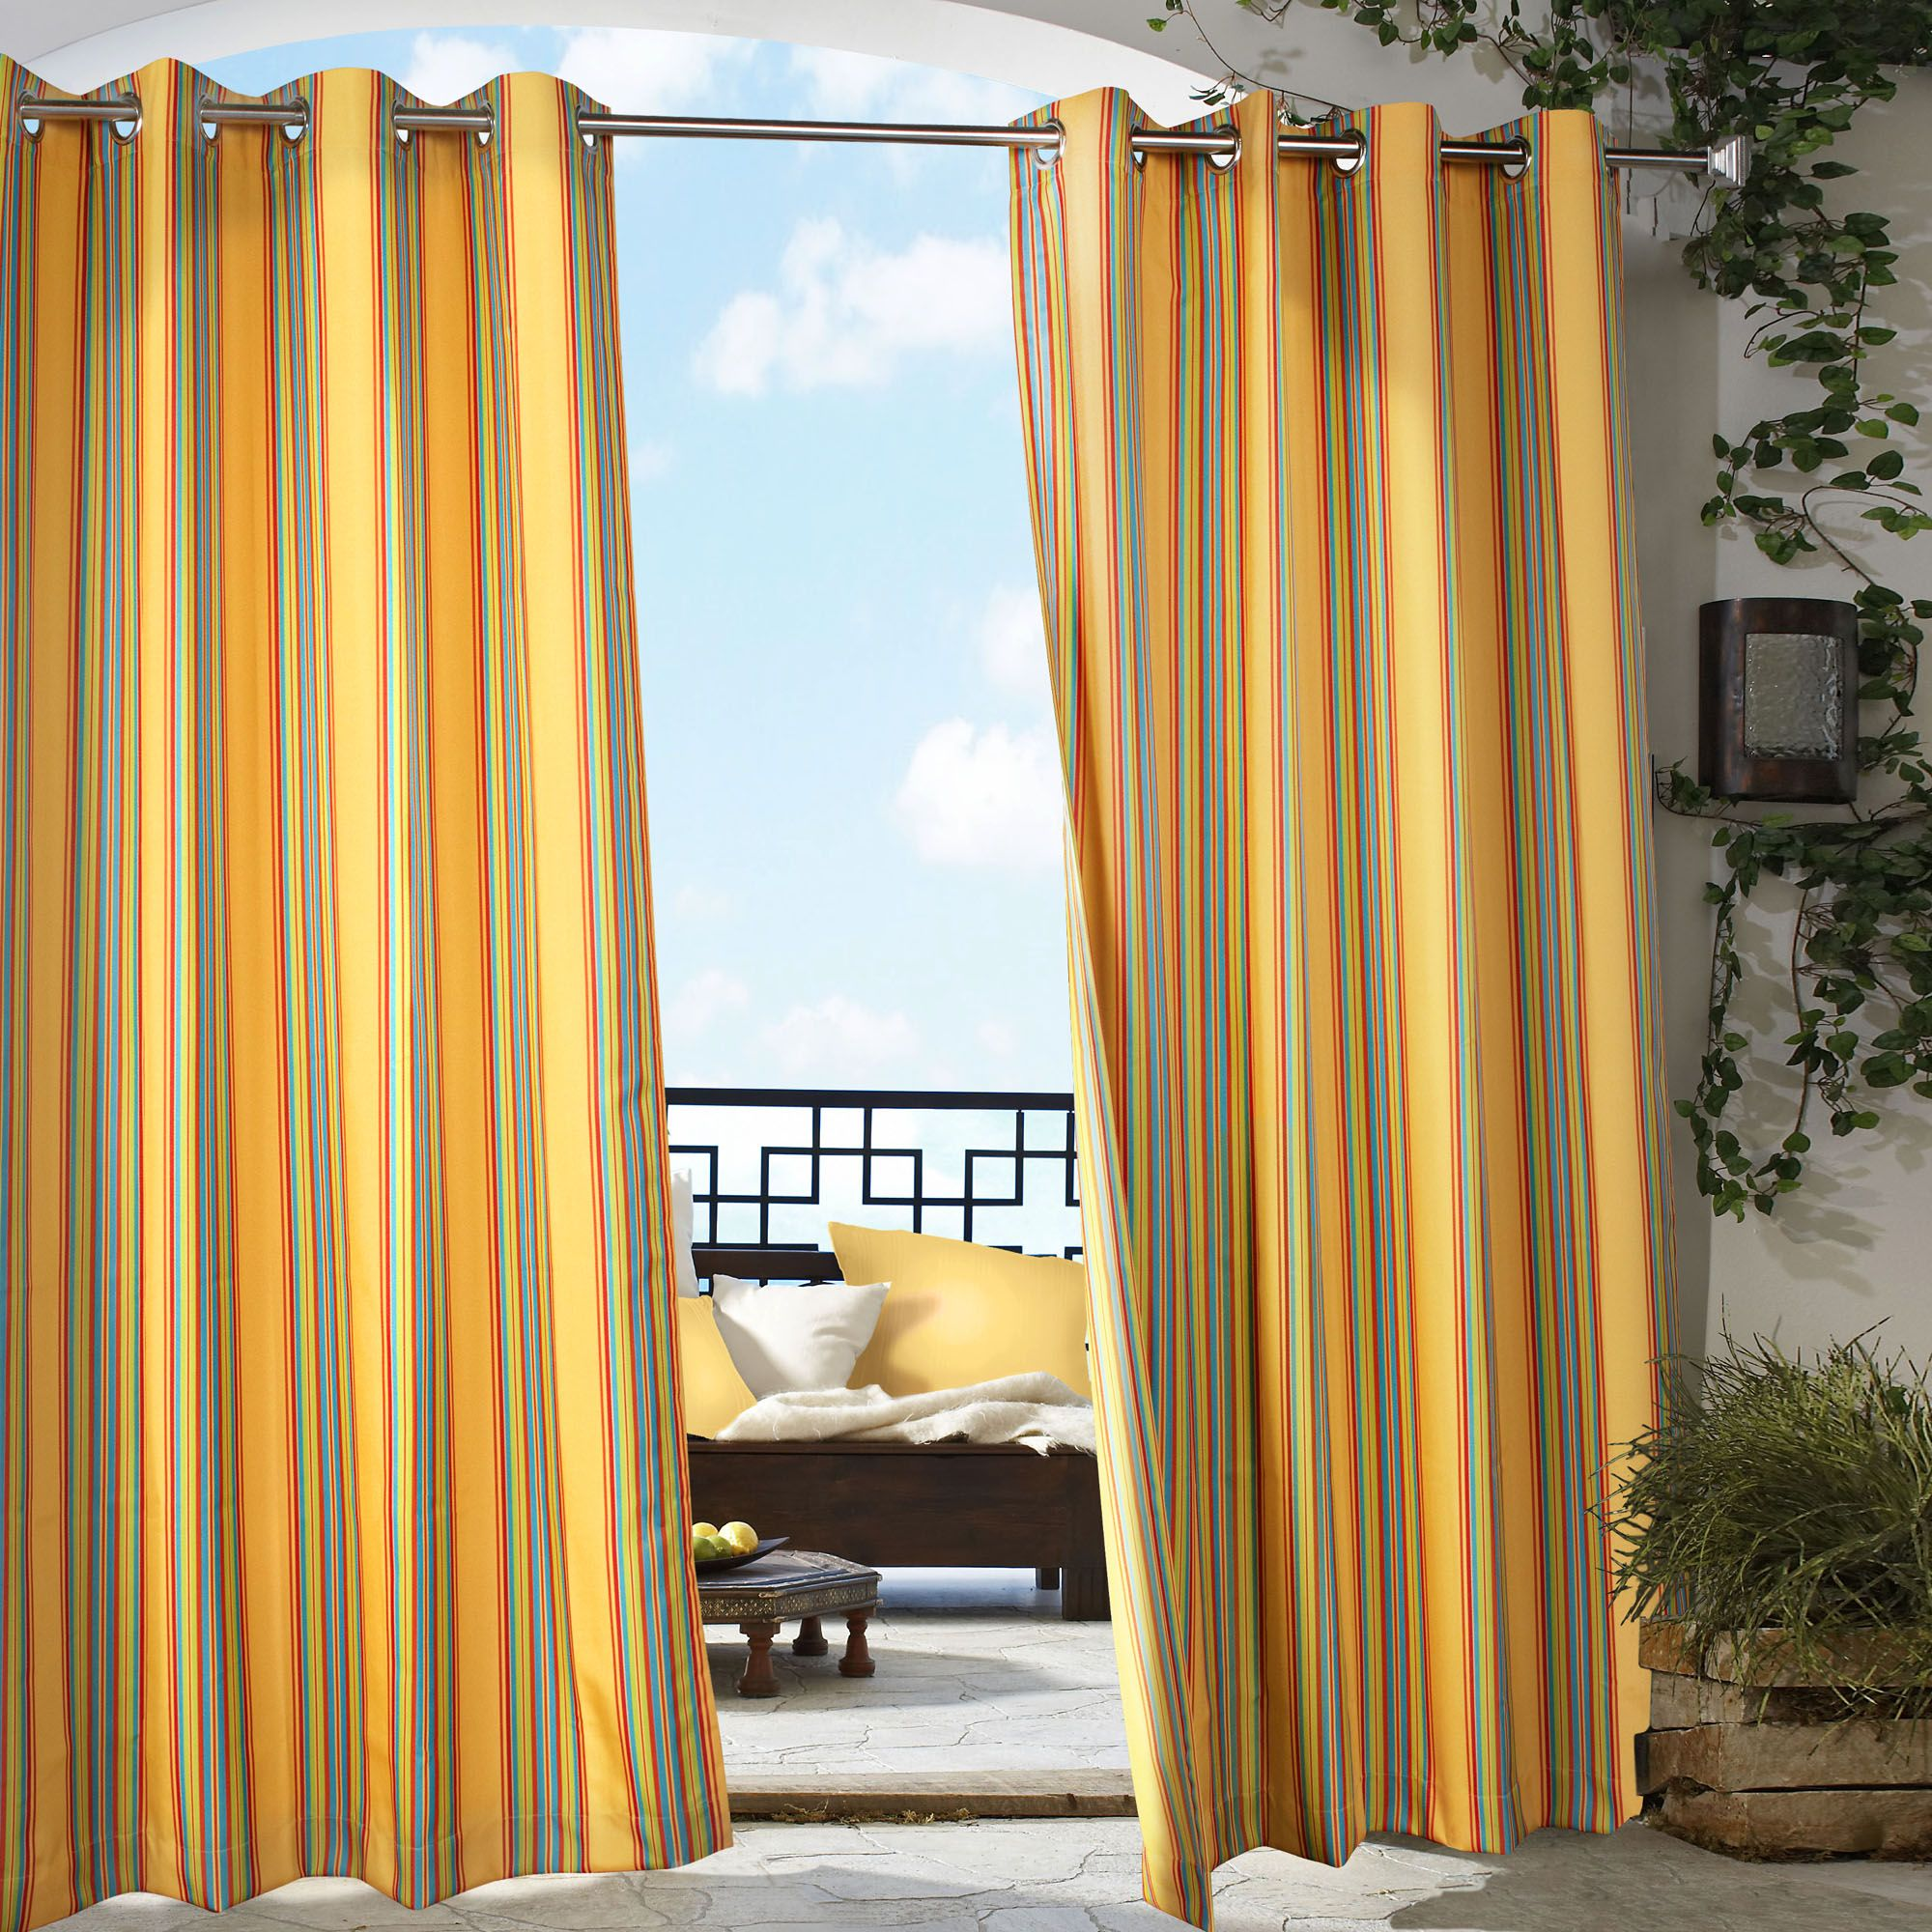 patio window eclipse for outdoor curtain treatments insulated blinds size doors walmart of vertical glass thermal with curtains door sliding drapes panel blackout french full